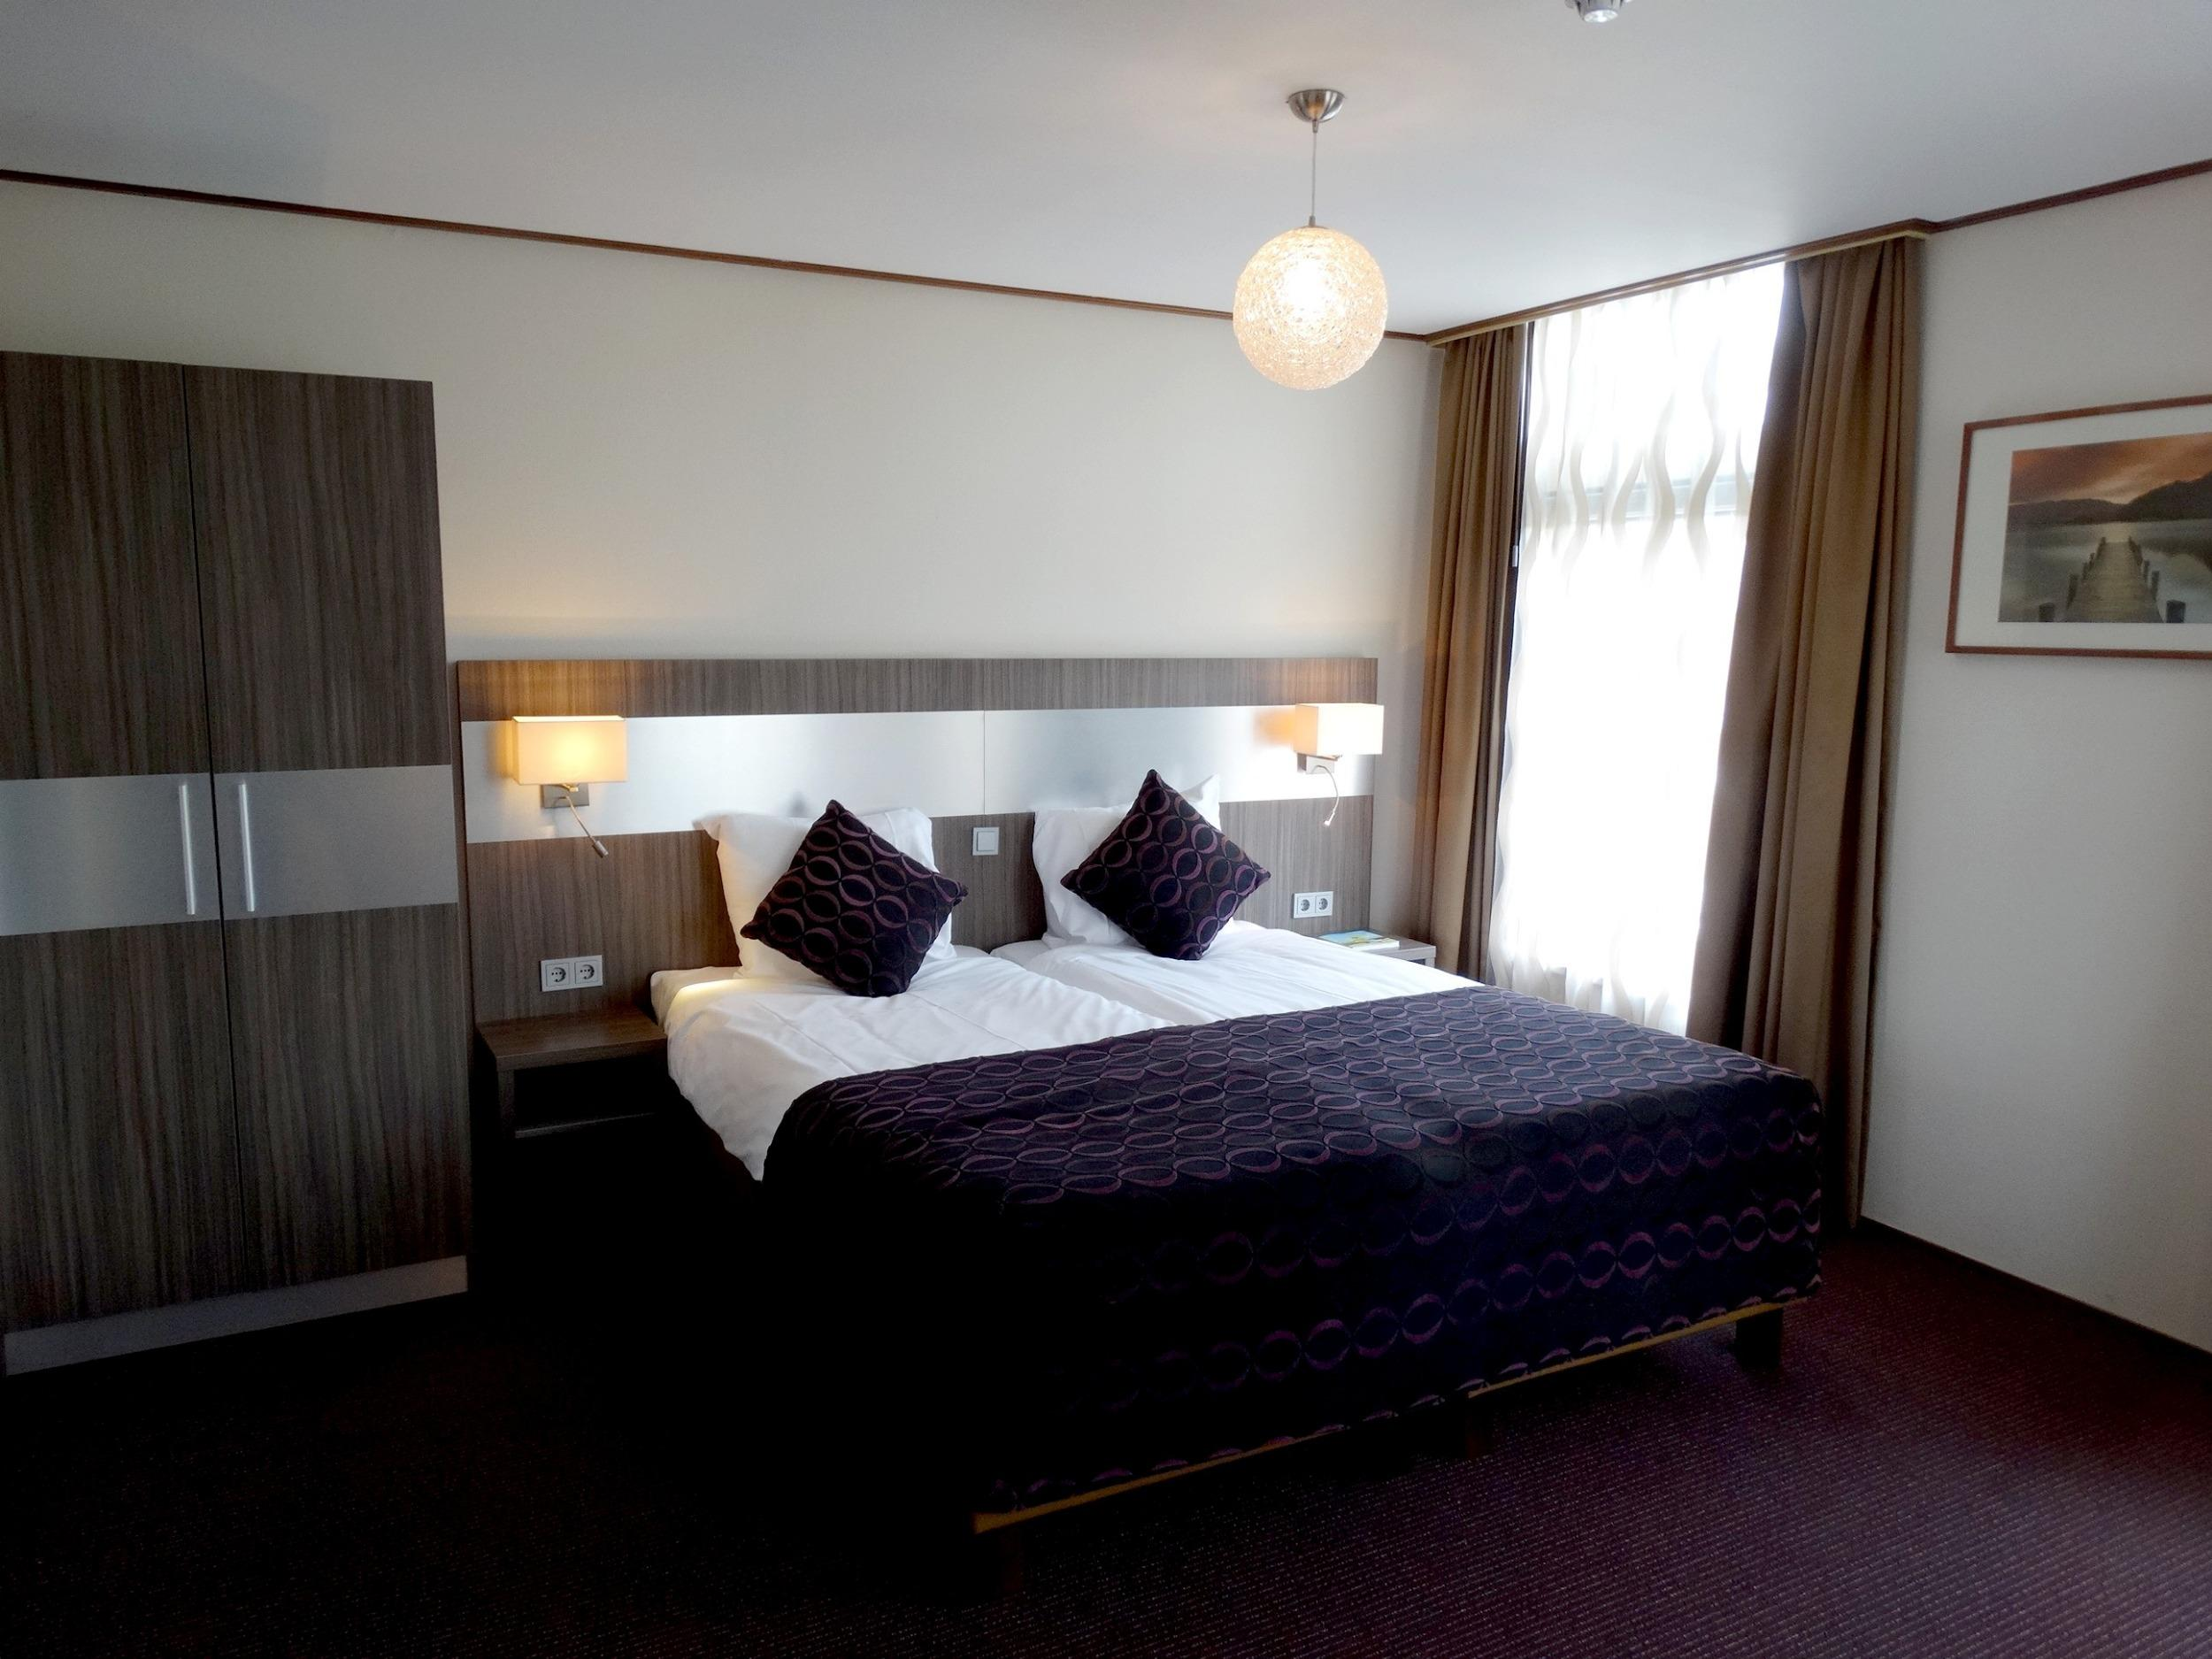 Camere Da Letto Faber.Hotel Faber Hoogezand Sappemeer